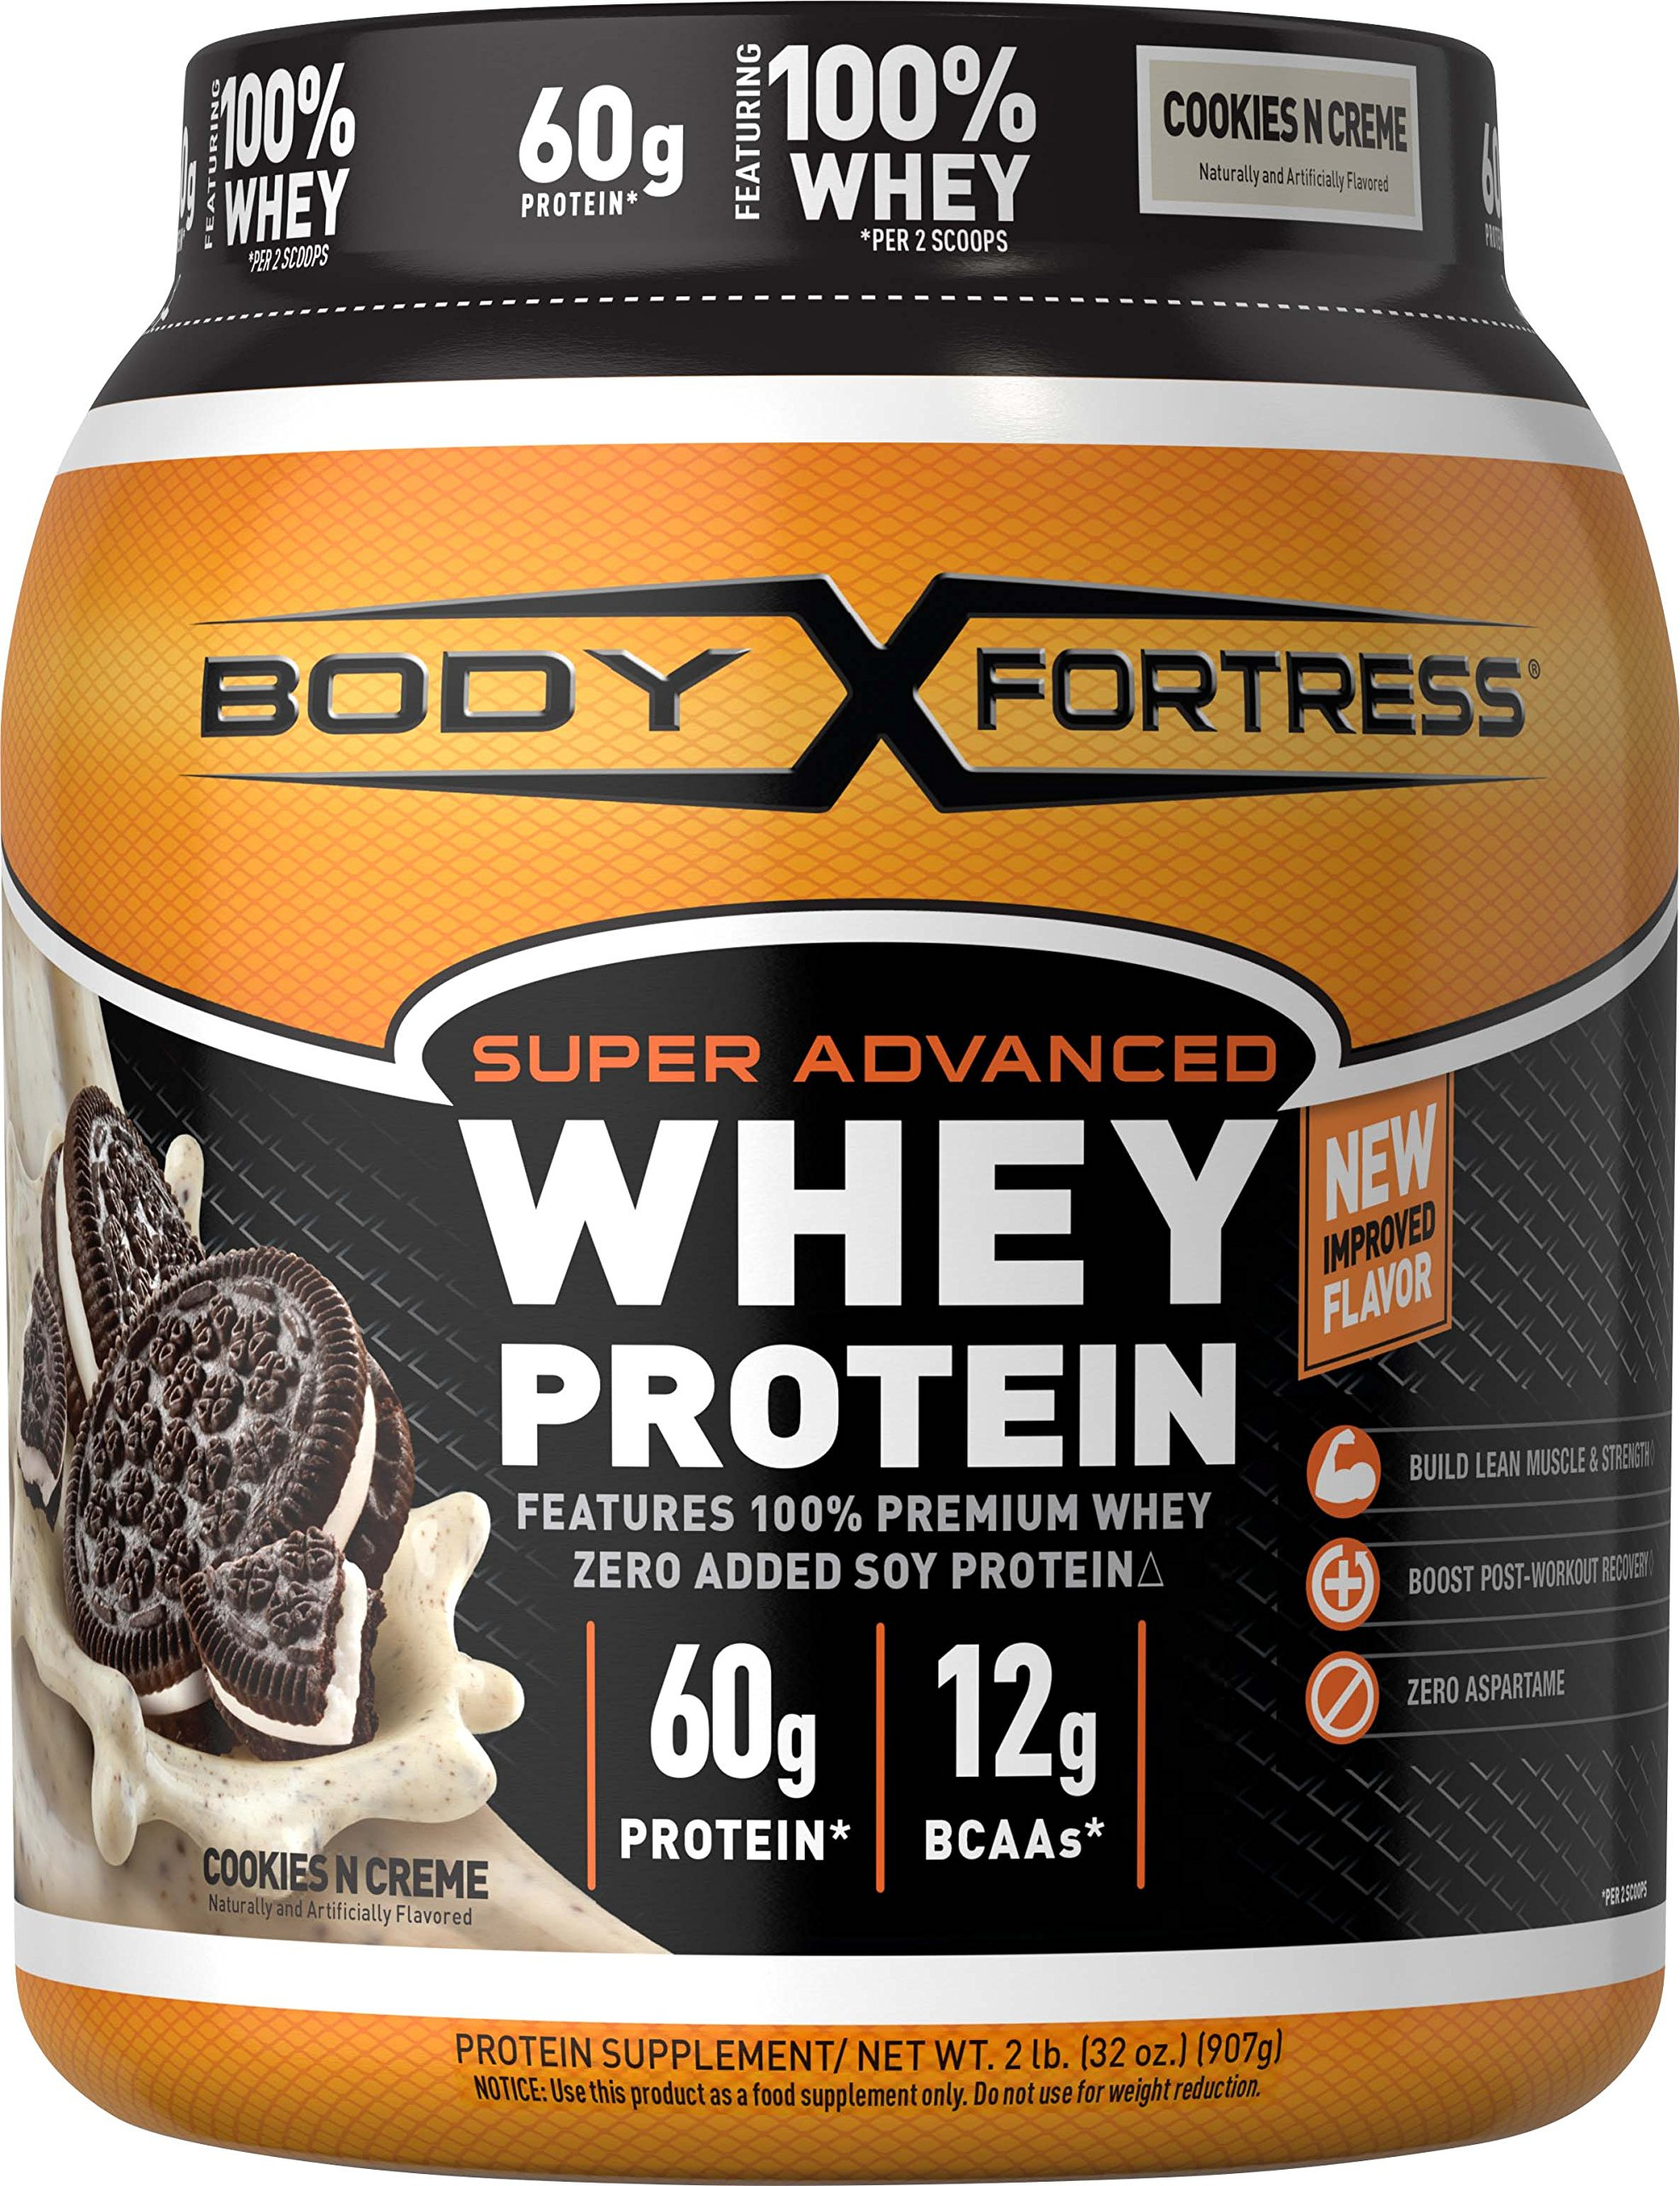 Remarkable, this Whey protein sex drive